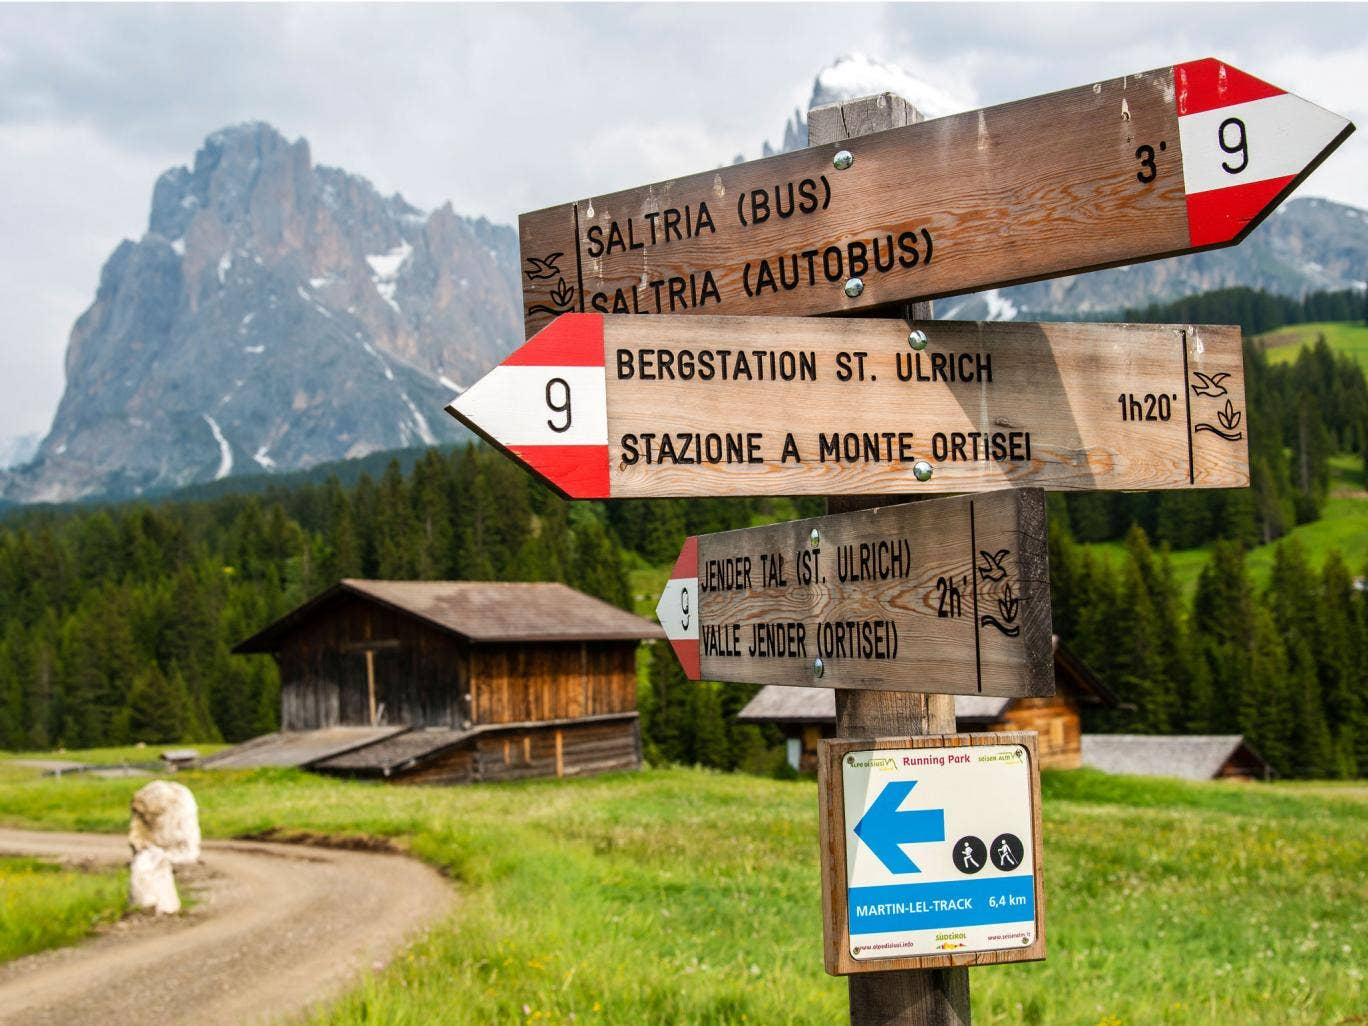 South Tyrol's governor wants to get rid of bilingual signs like these on a hiking trail in the Dolomites